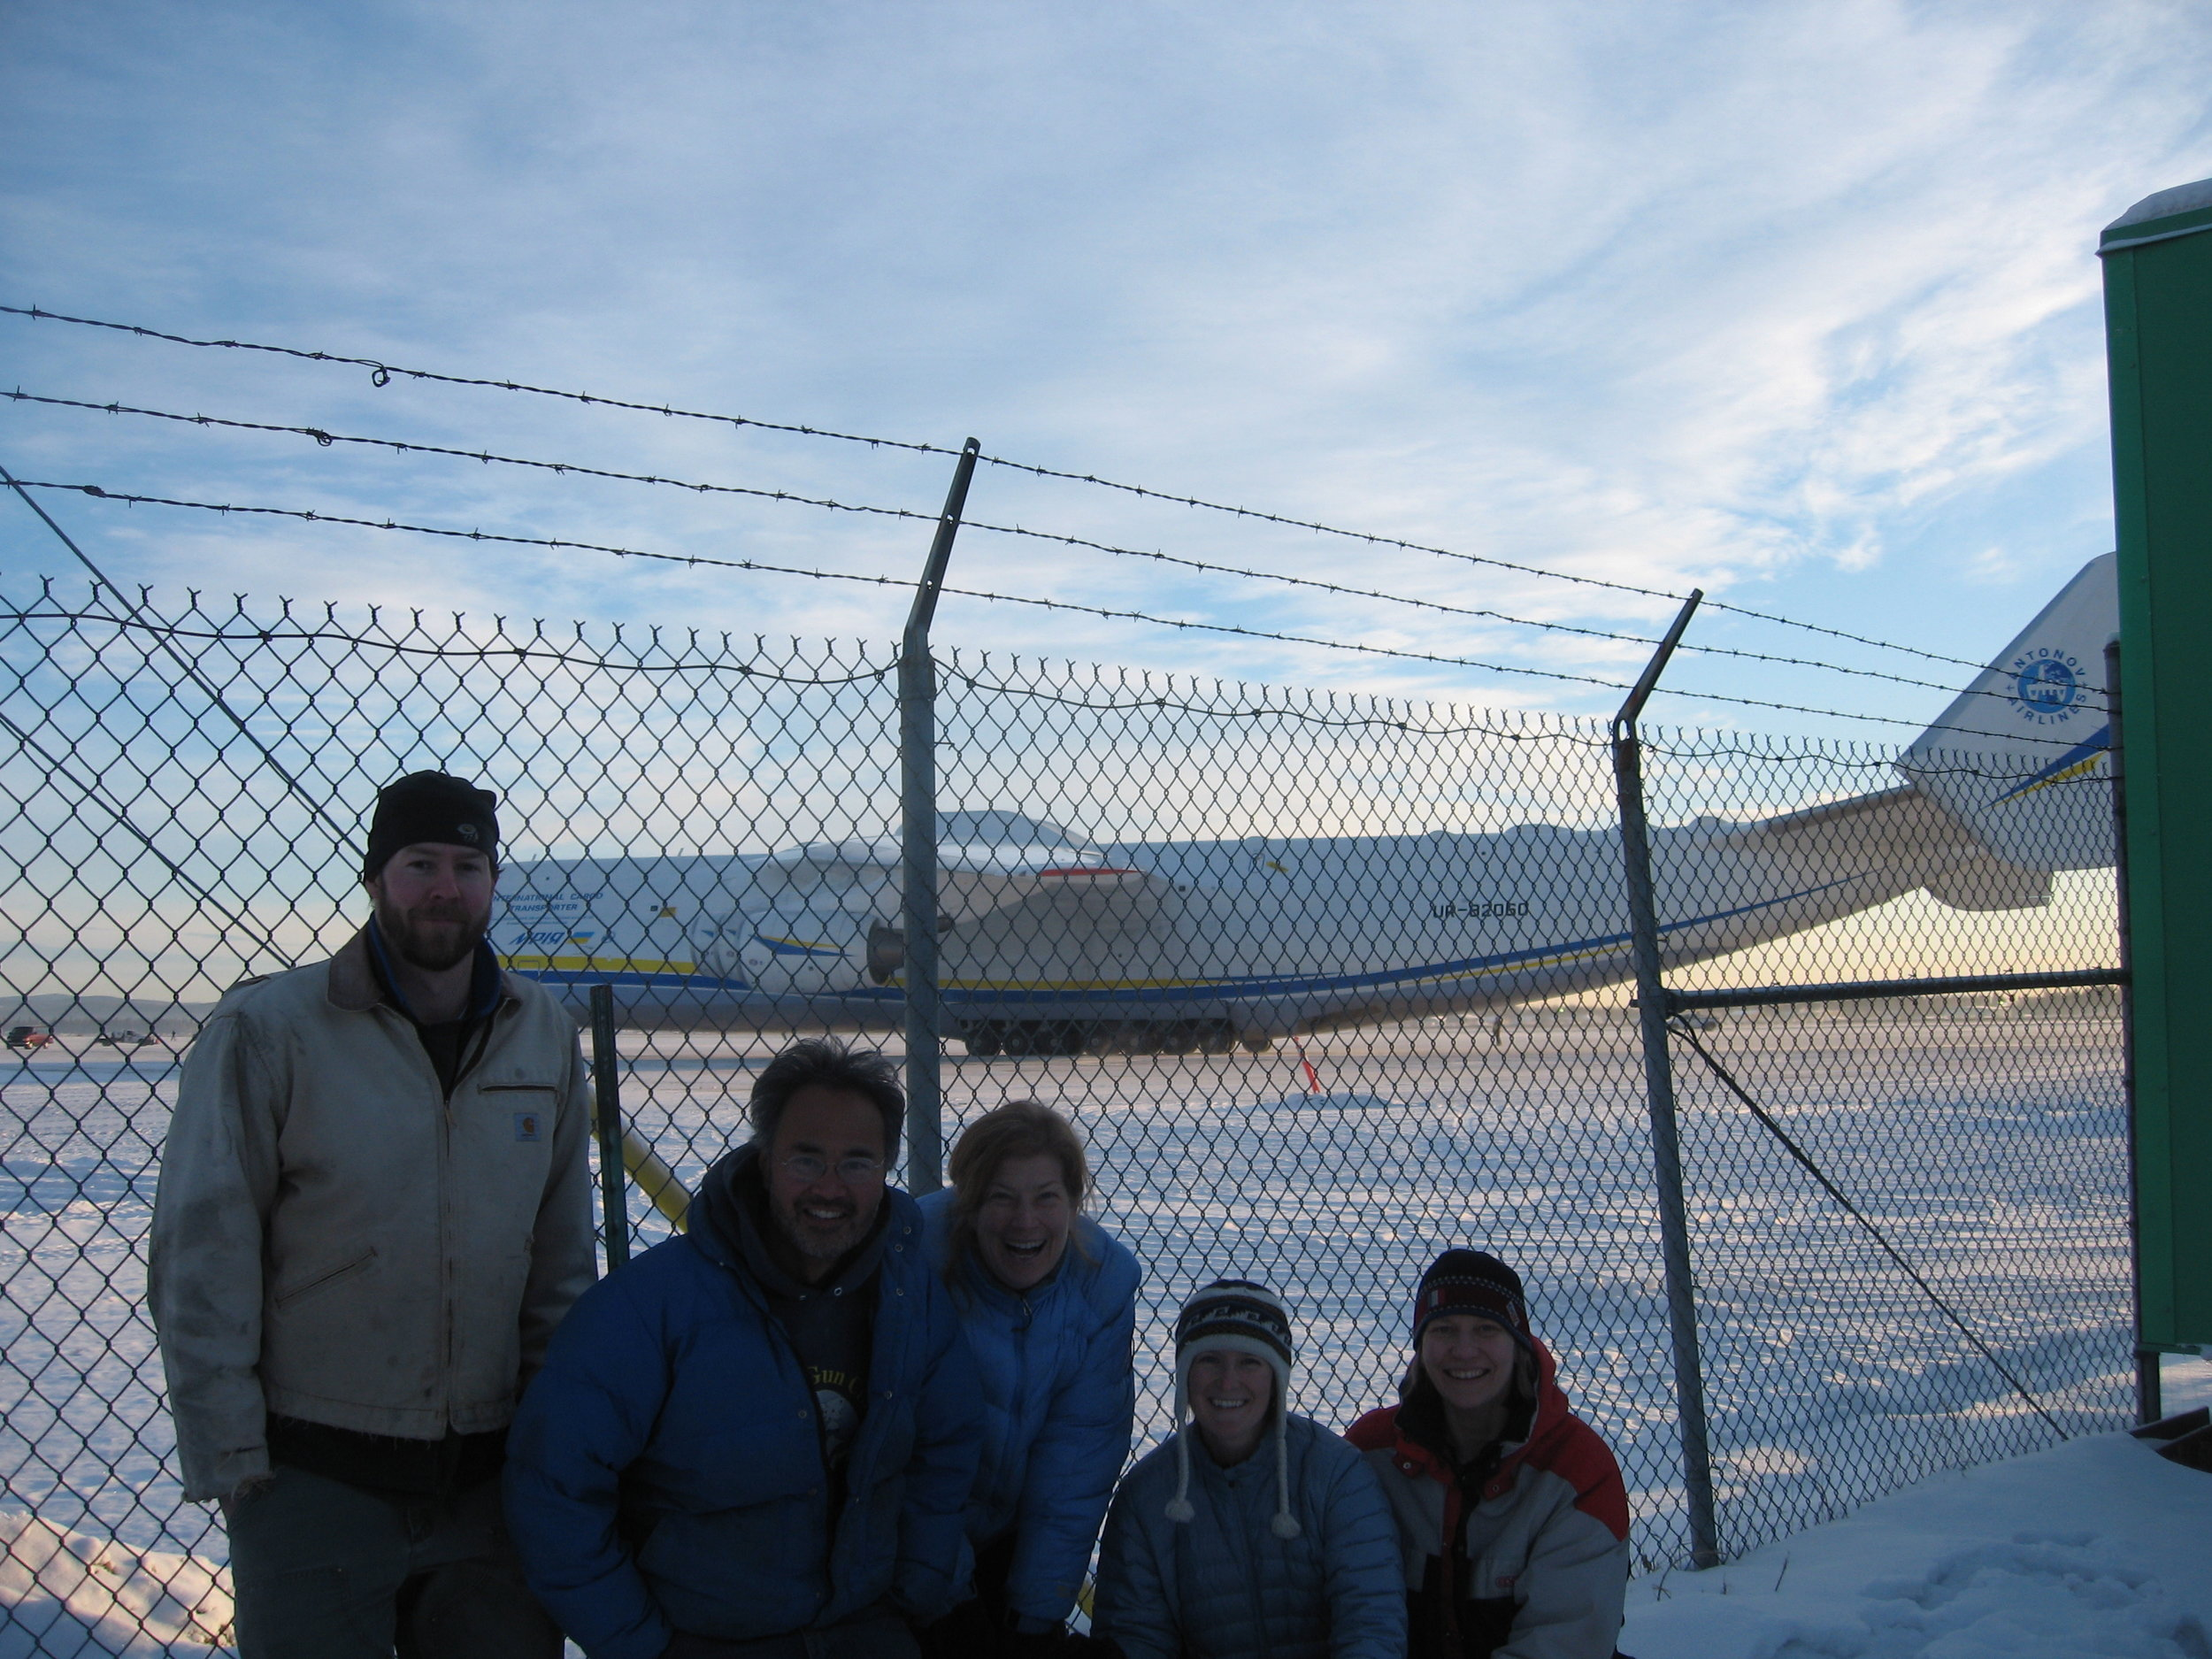 From left: Matt Irinaga, Dana Moudra Truffer, Christie Haupert, Marin Kuizenga, Erik Lund and Dana Coda meet the world's biggest plane. Photo: Marin Kuizenga